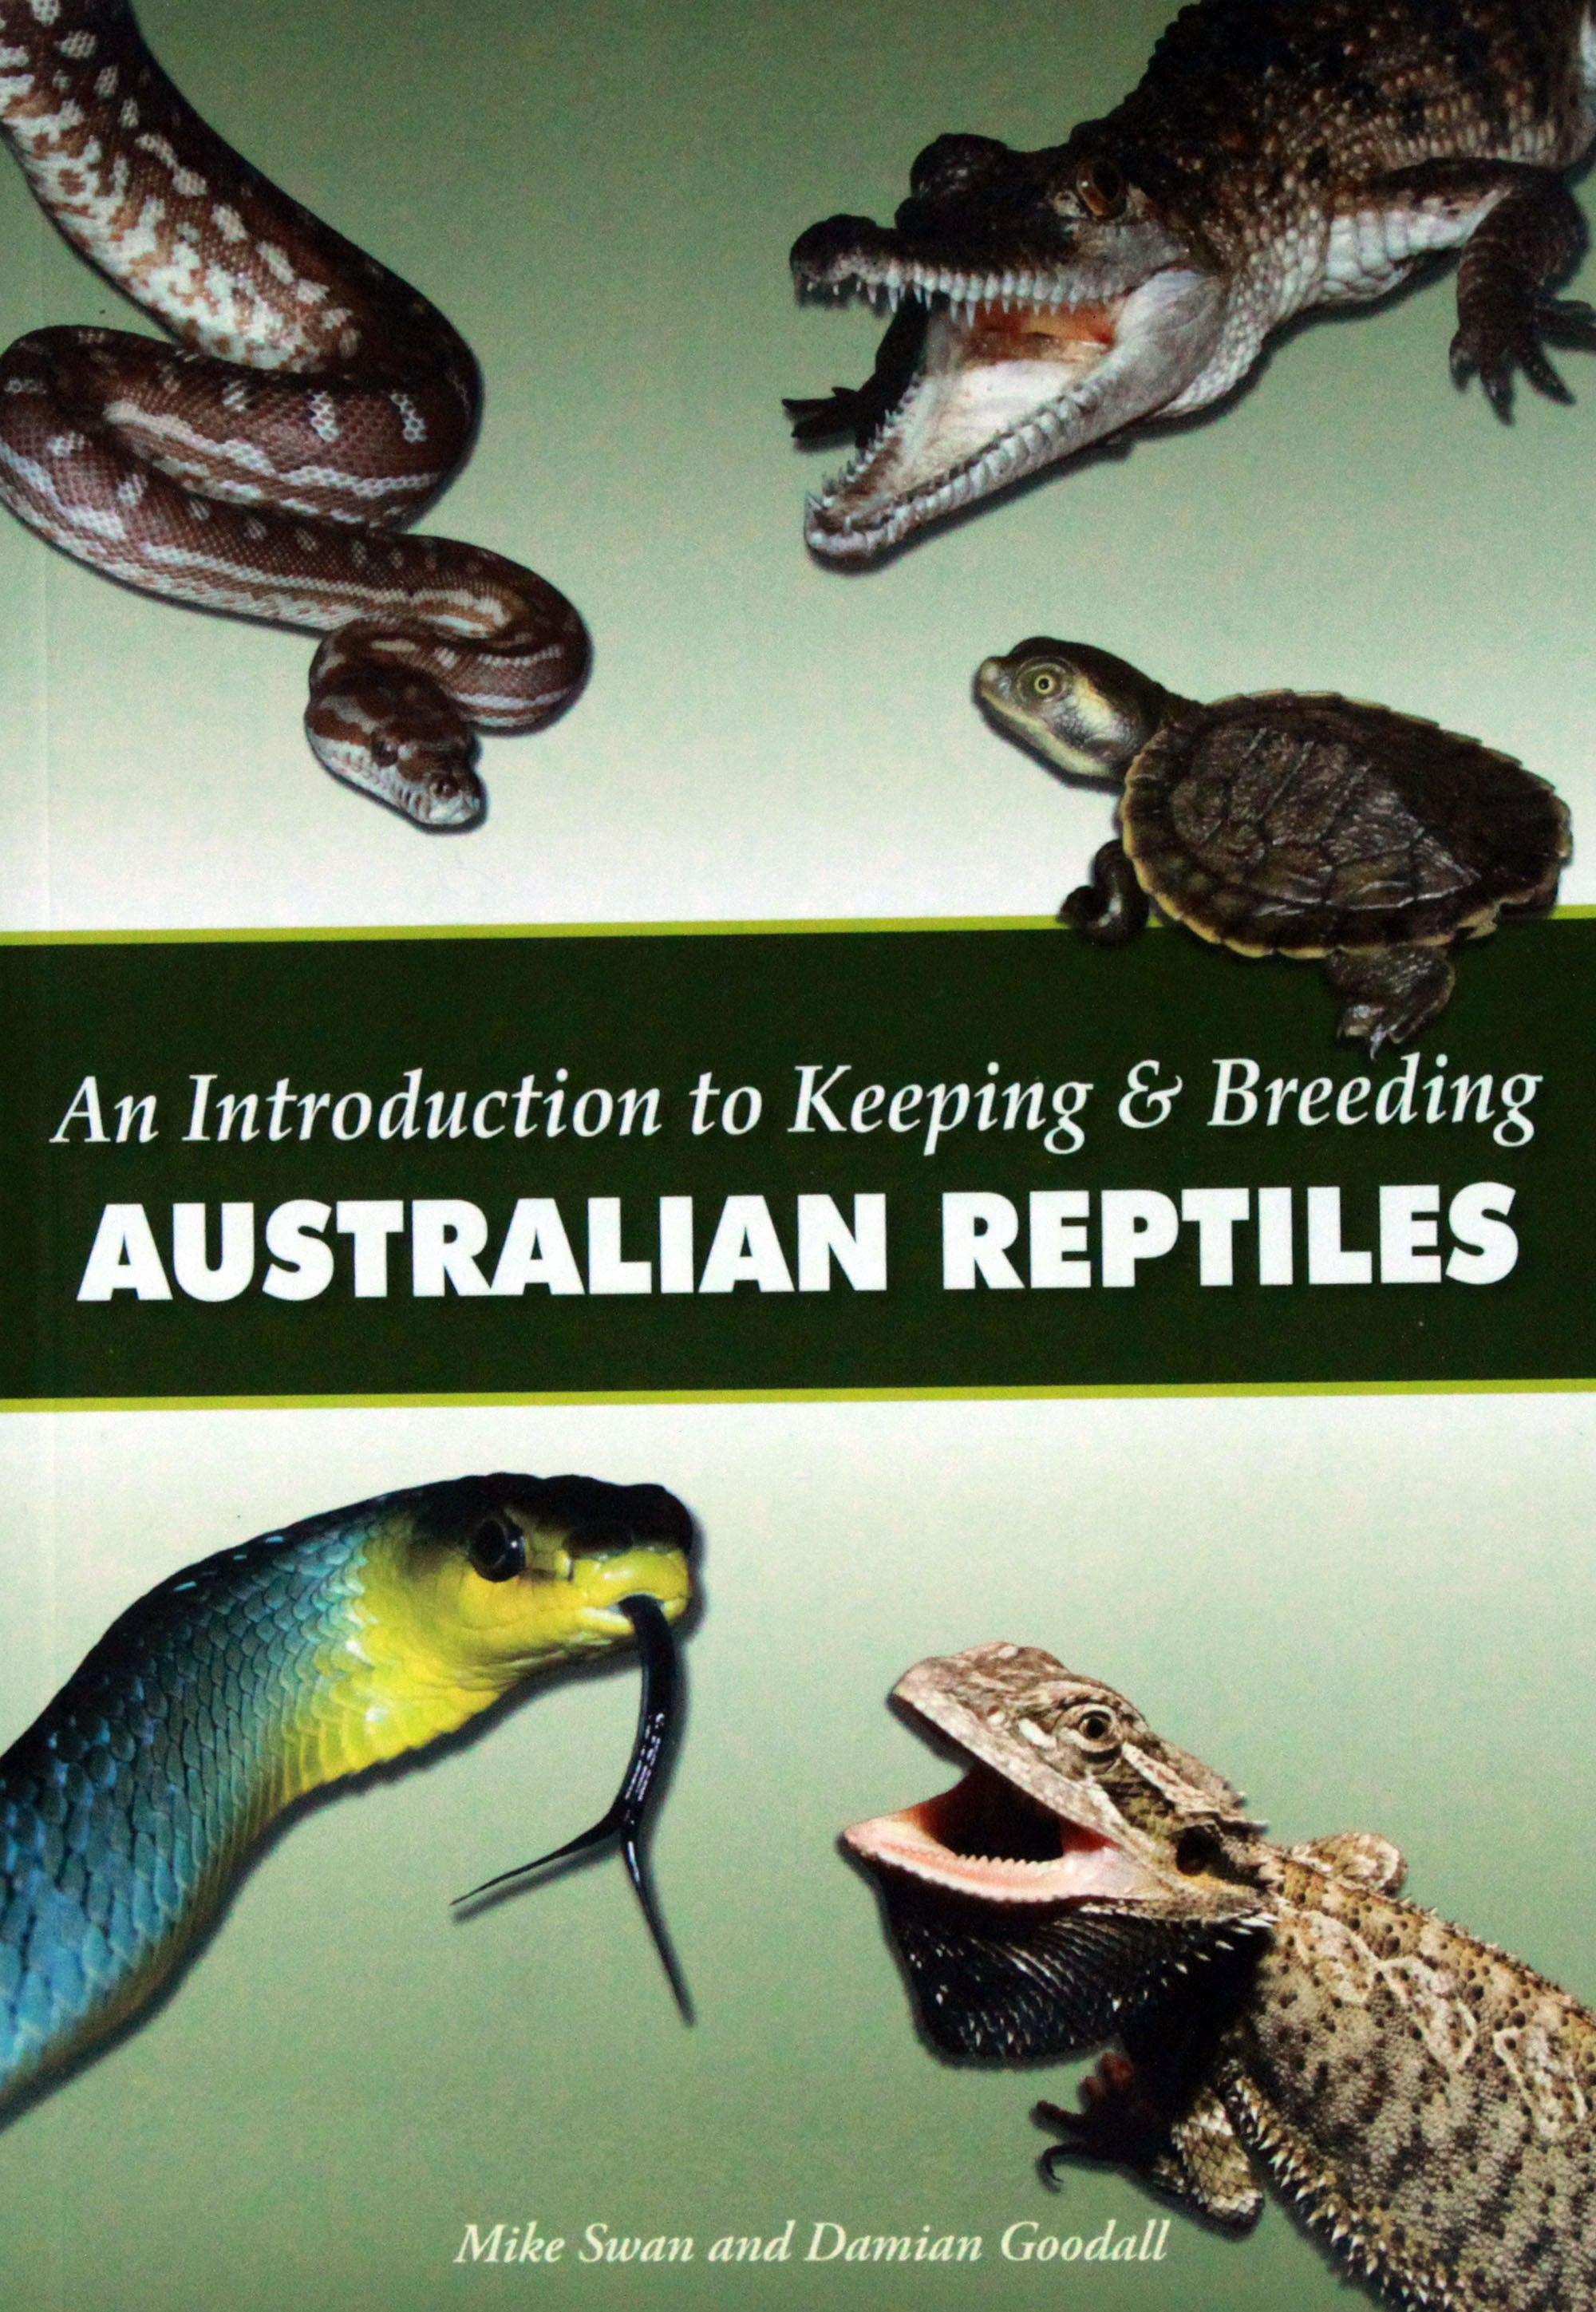 An Introduction to Keeping and Breeding Australian Reptiles